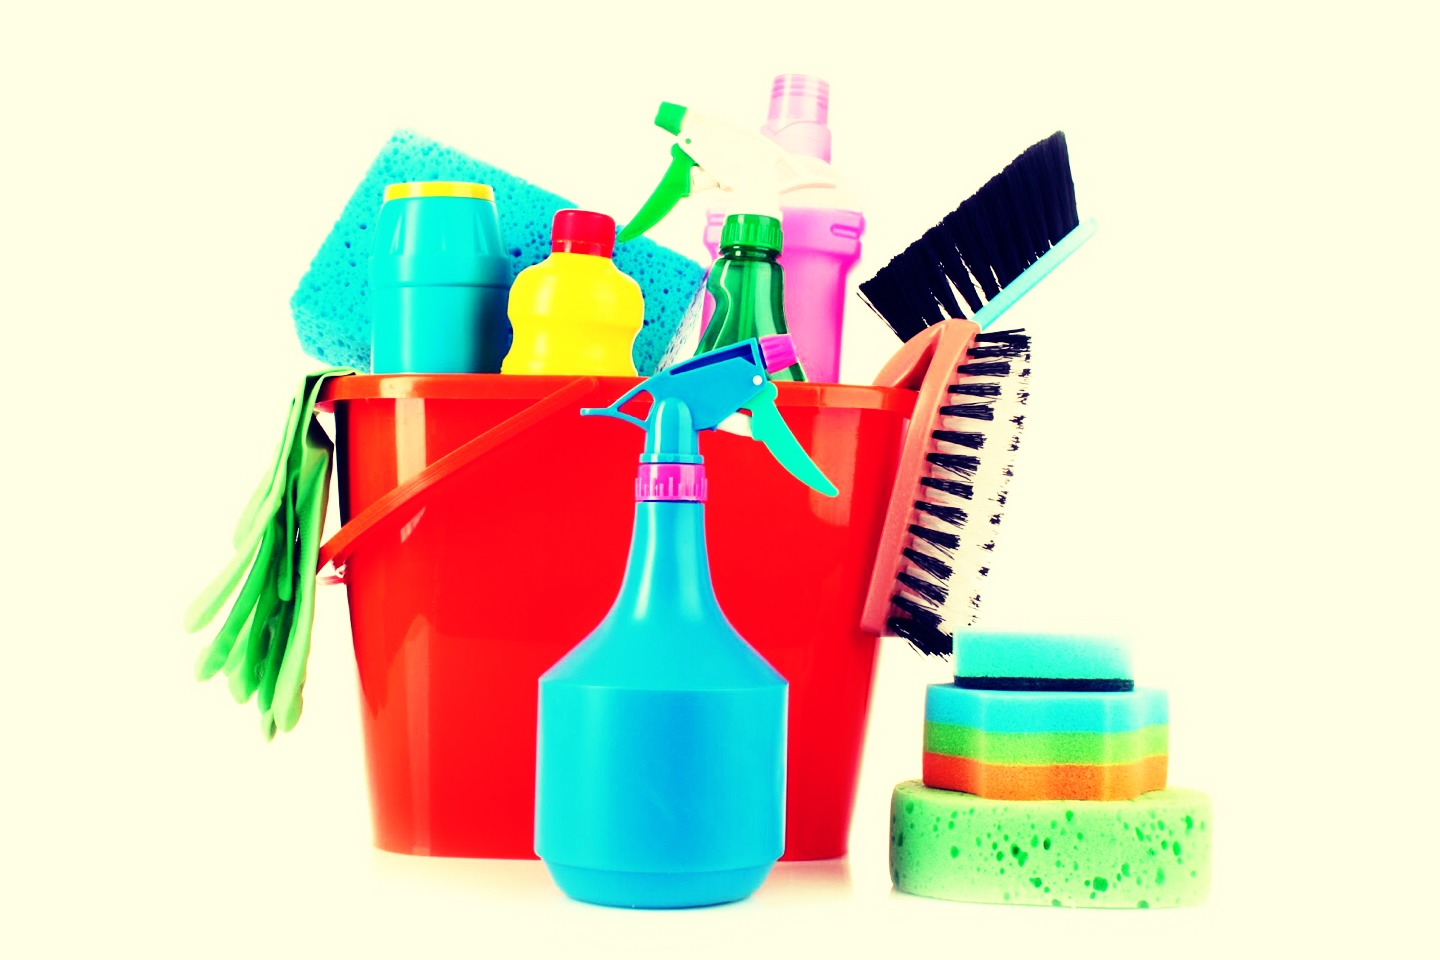 When cleaning is easy to workout; - when mopping, sweeping, or vacuuming do it on your tip toes to work your calves  - when doing laundry fold standing up and walk side to side to get steps in (FitBit)